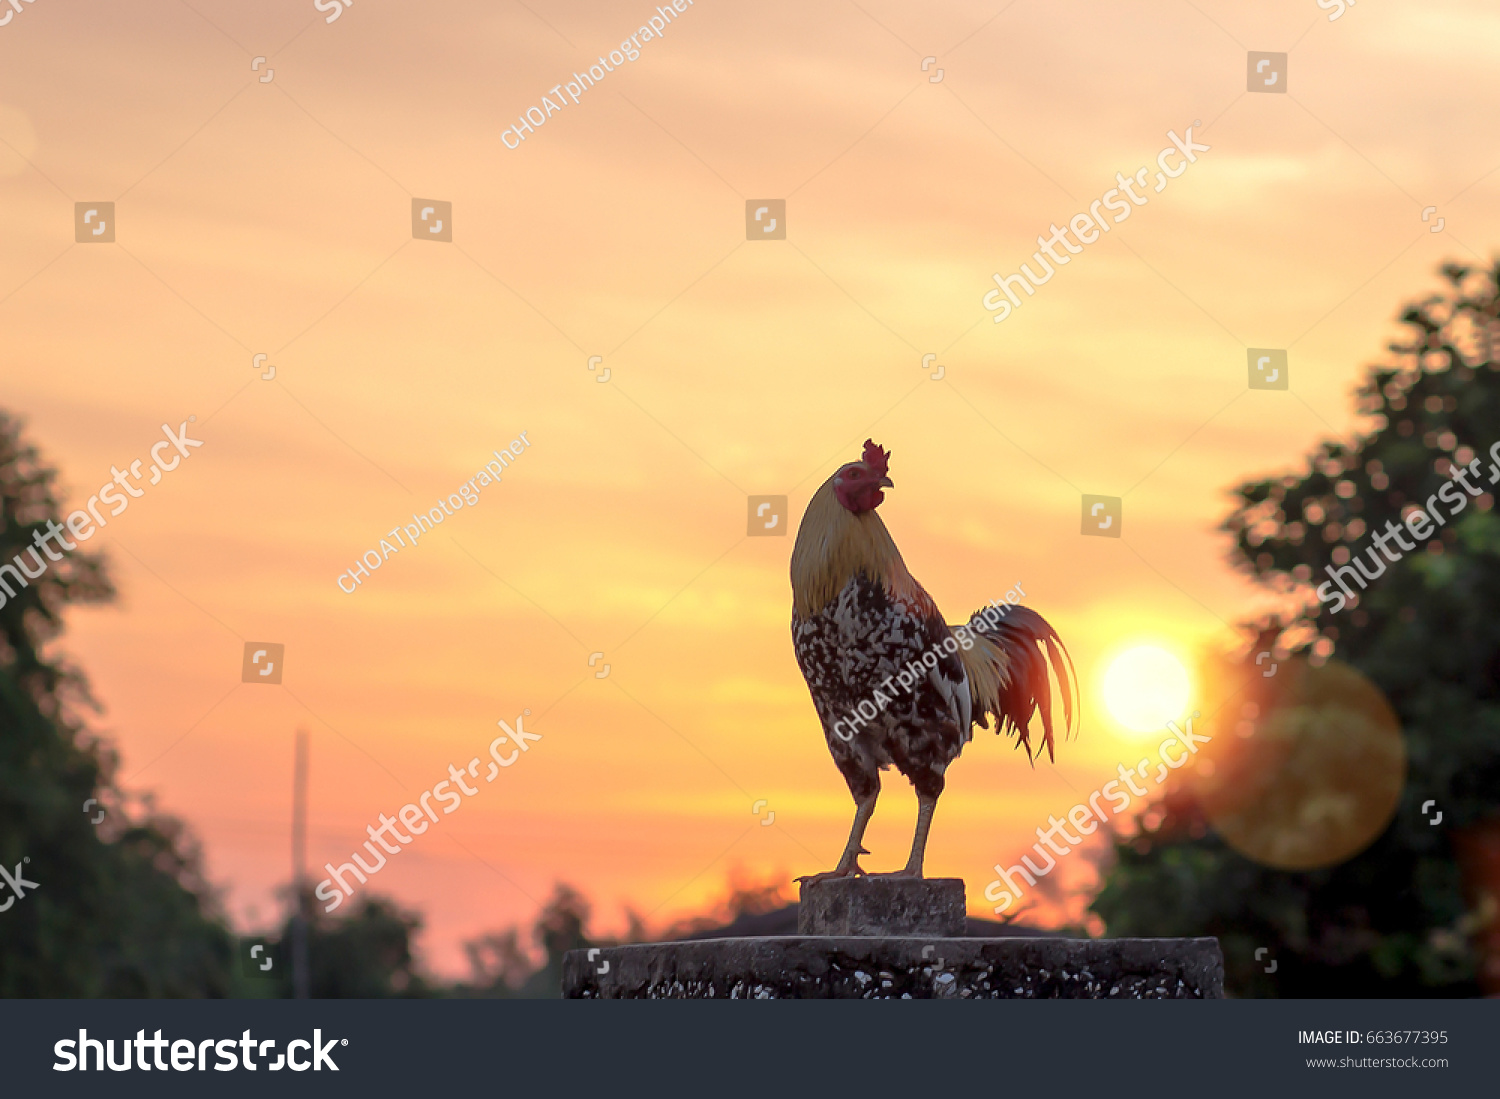 Early morning of new day concept: Silhouette rooster on blurred beautiful sunrise sky with sun light in farm autumn background #663677395